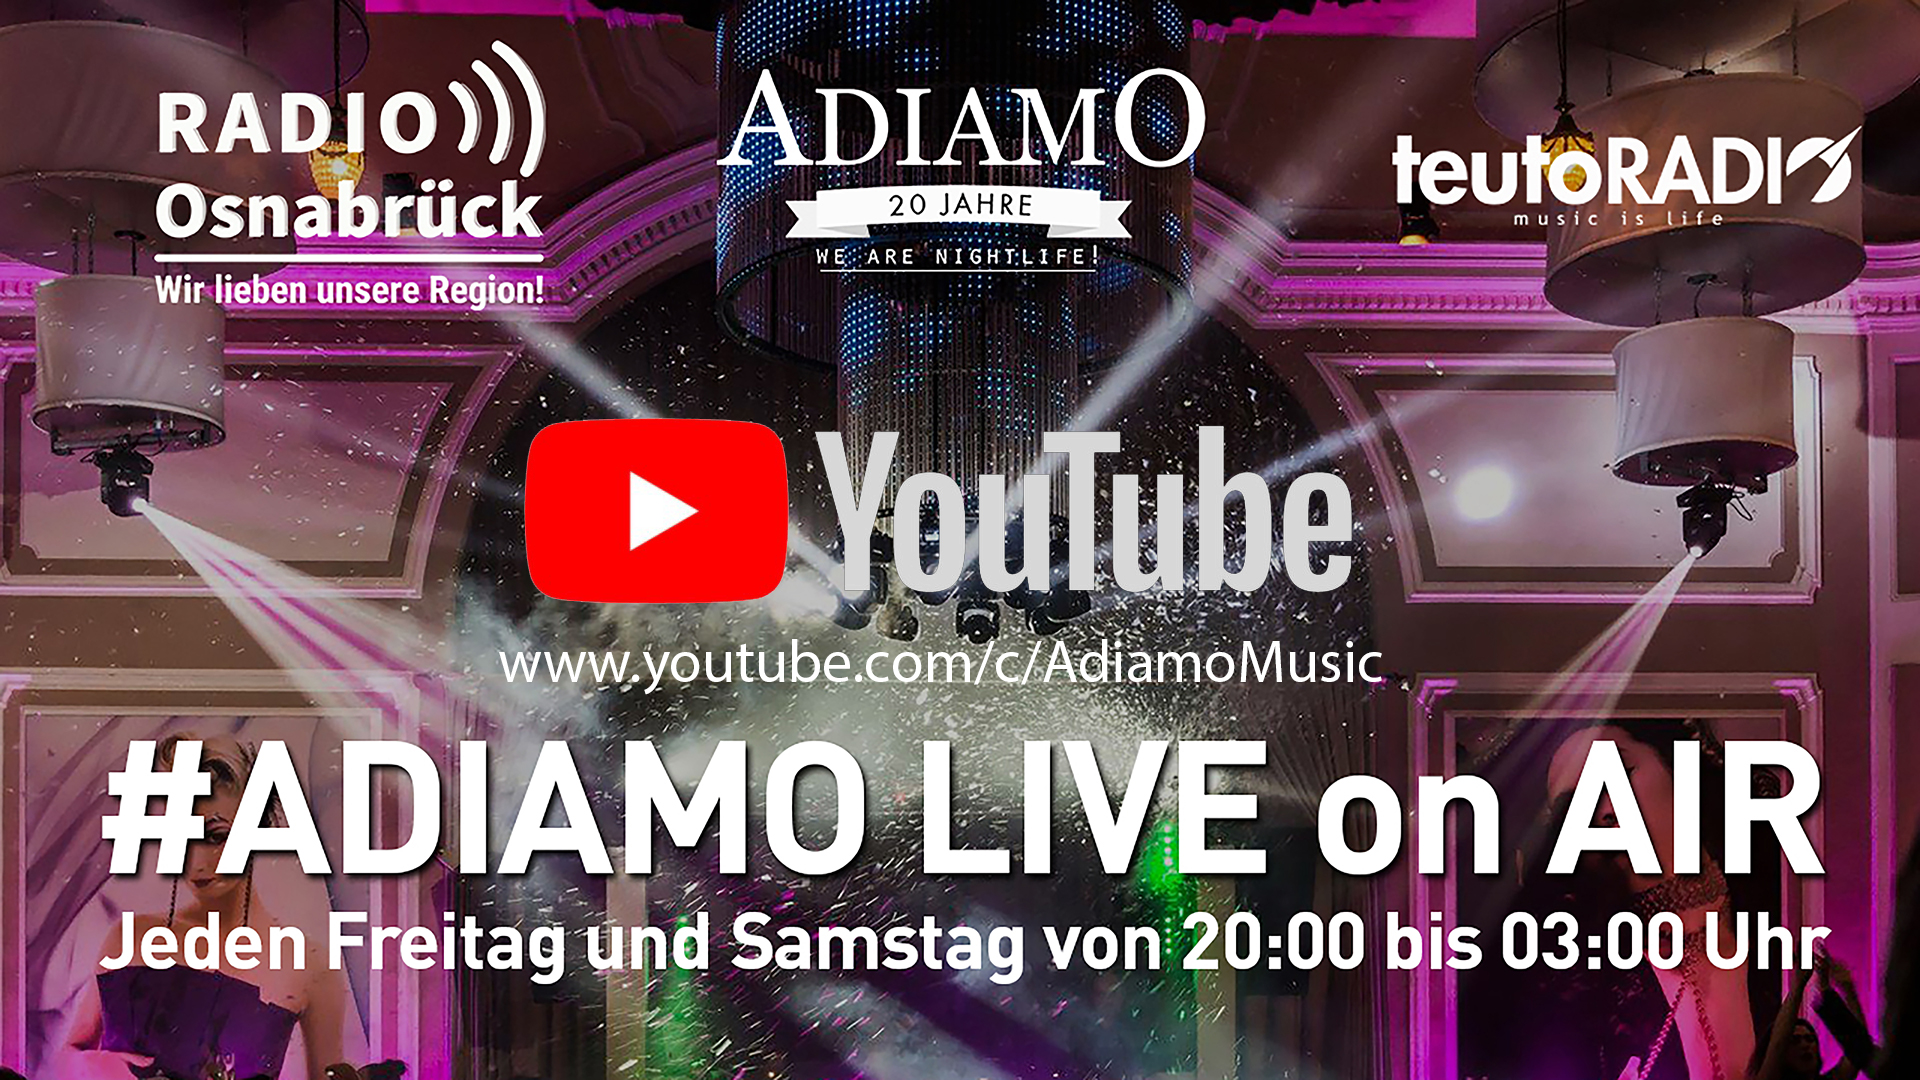 Adiamo TV Adimao Music Youtube